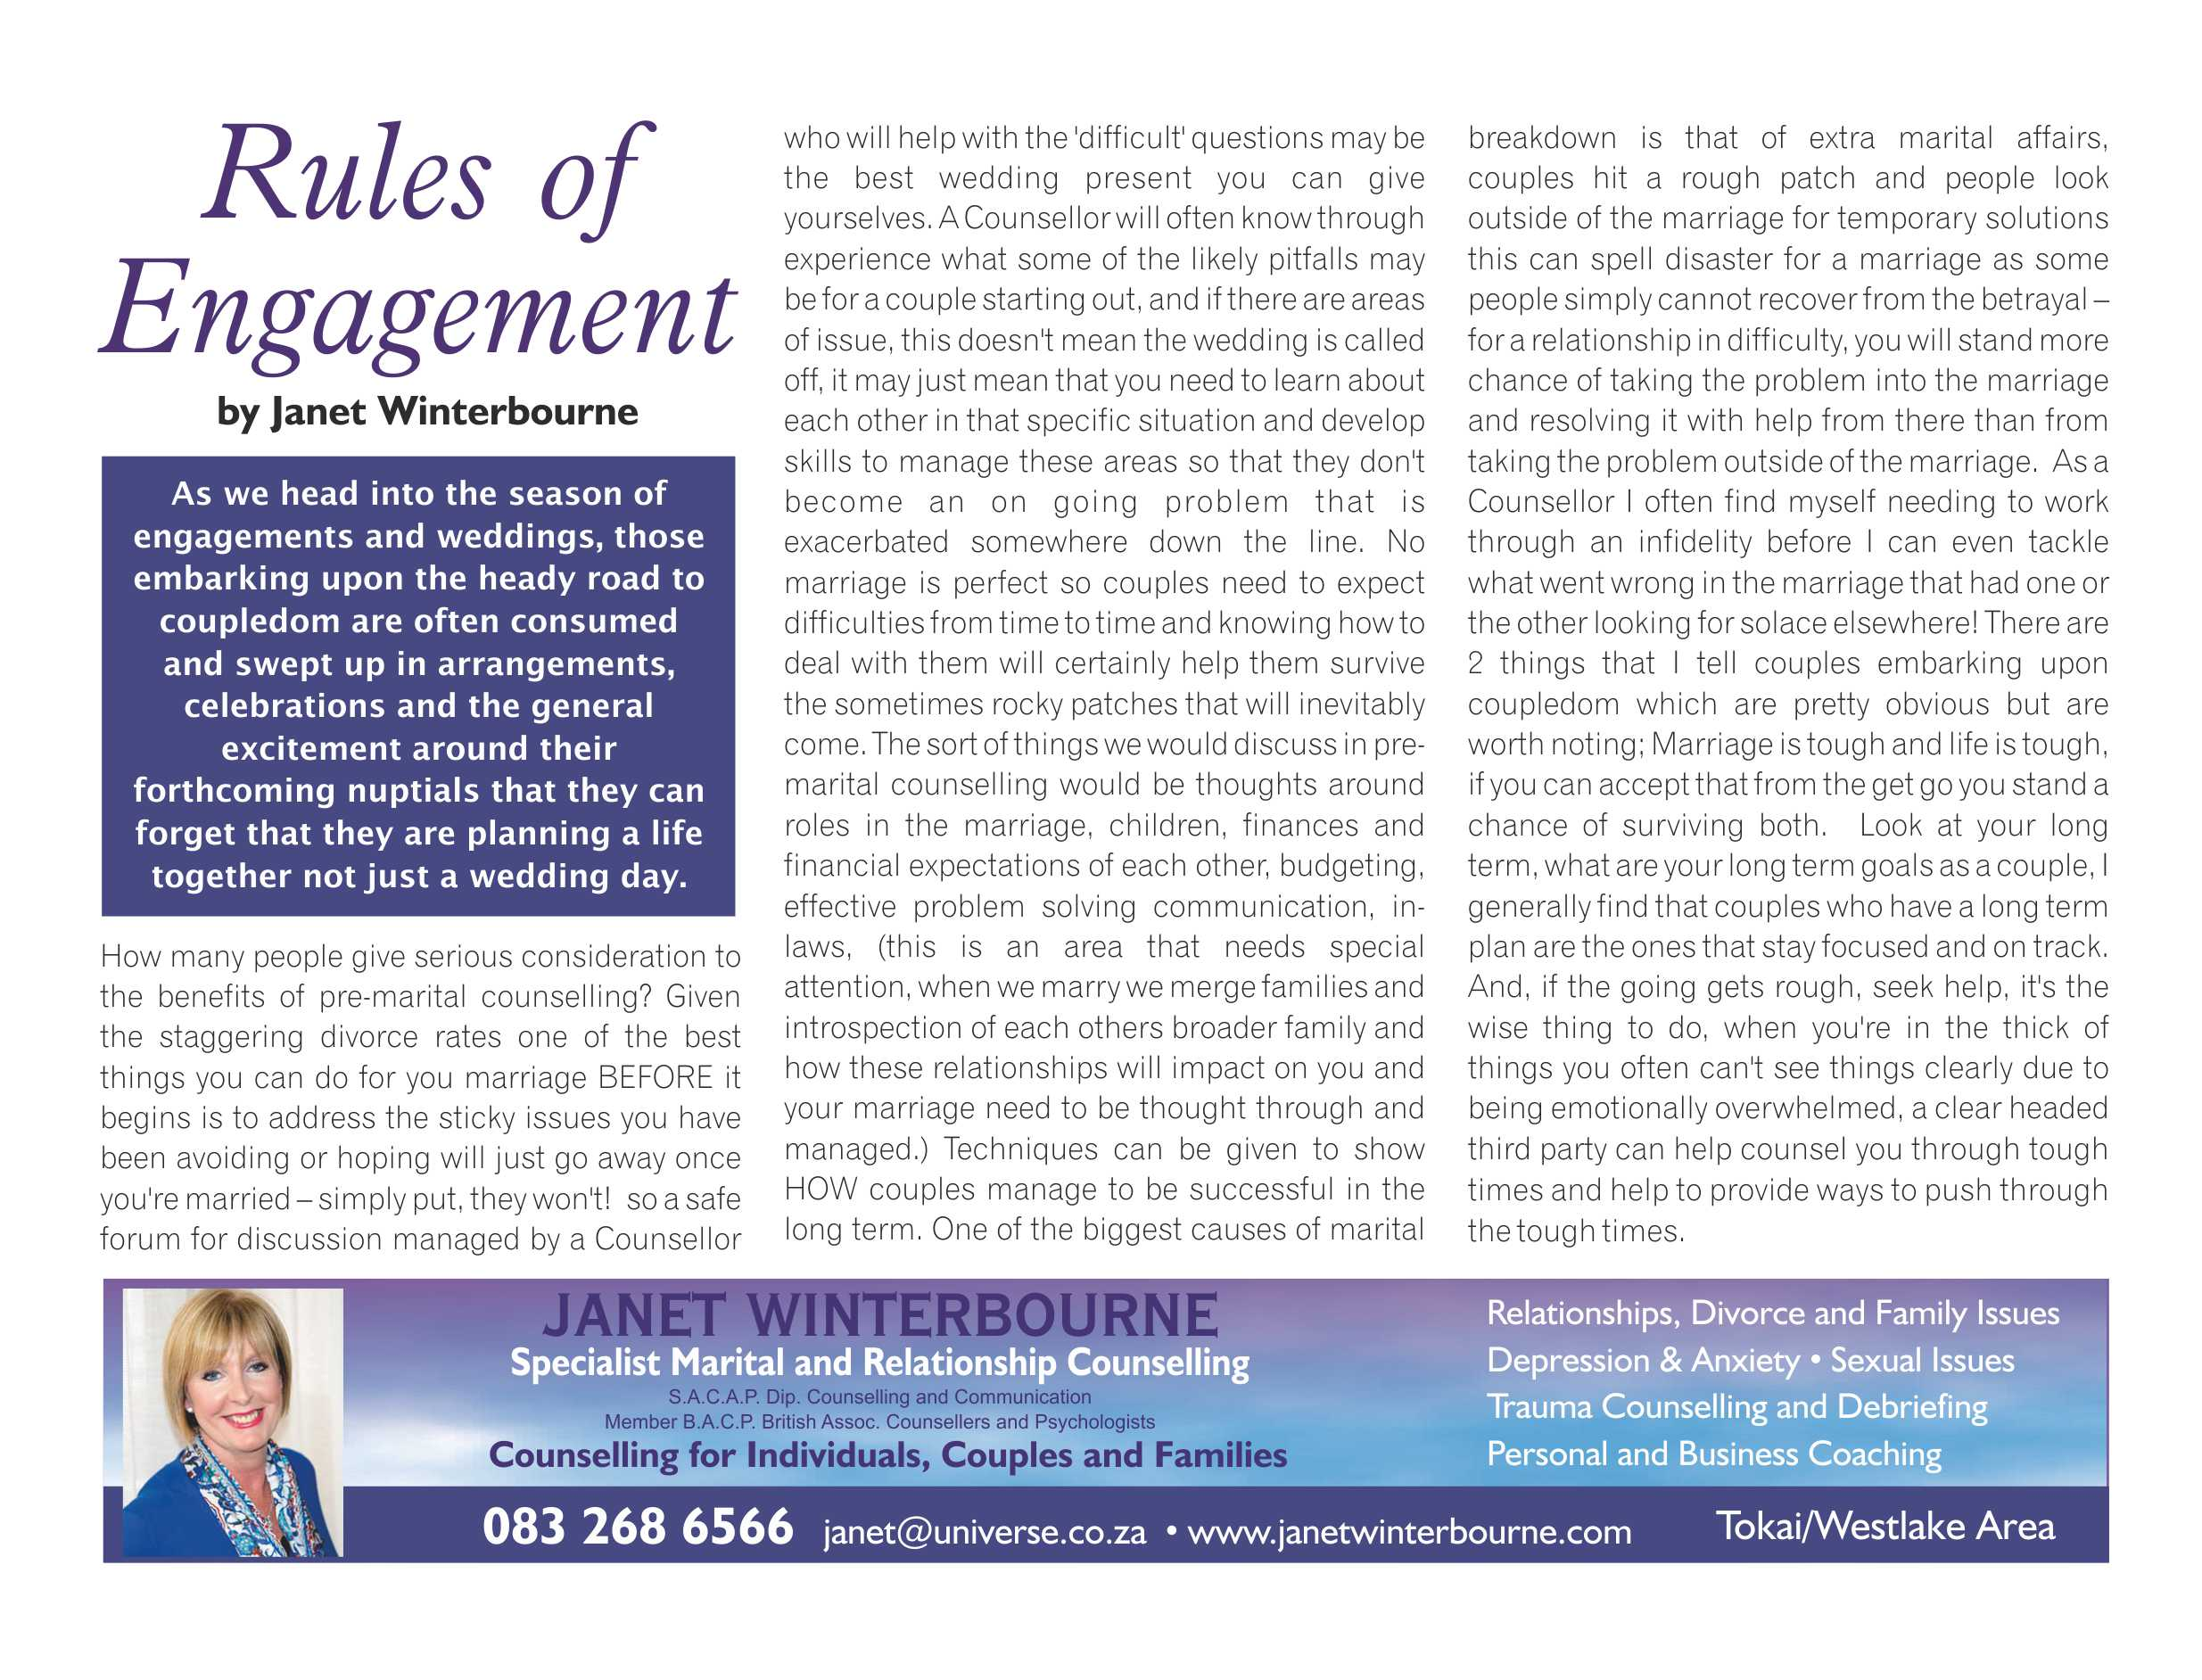 rule of engagement | Psychologist Cape Town